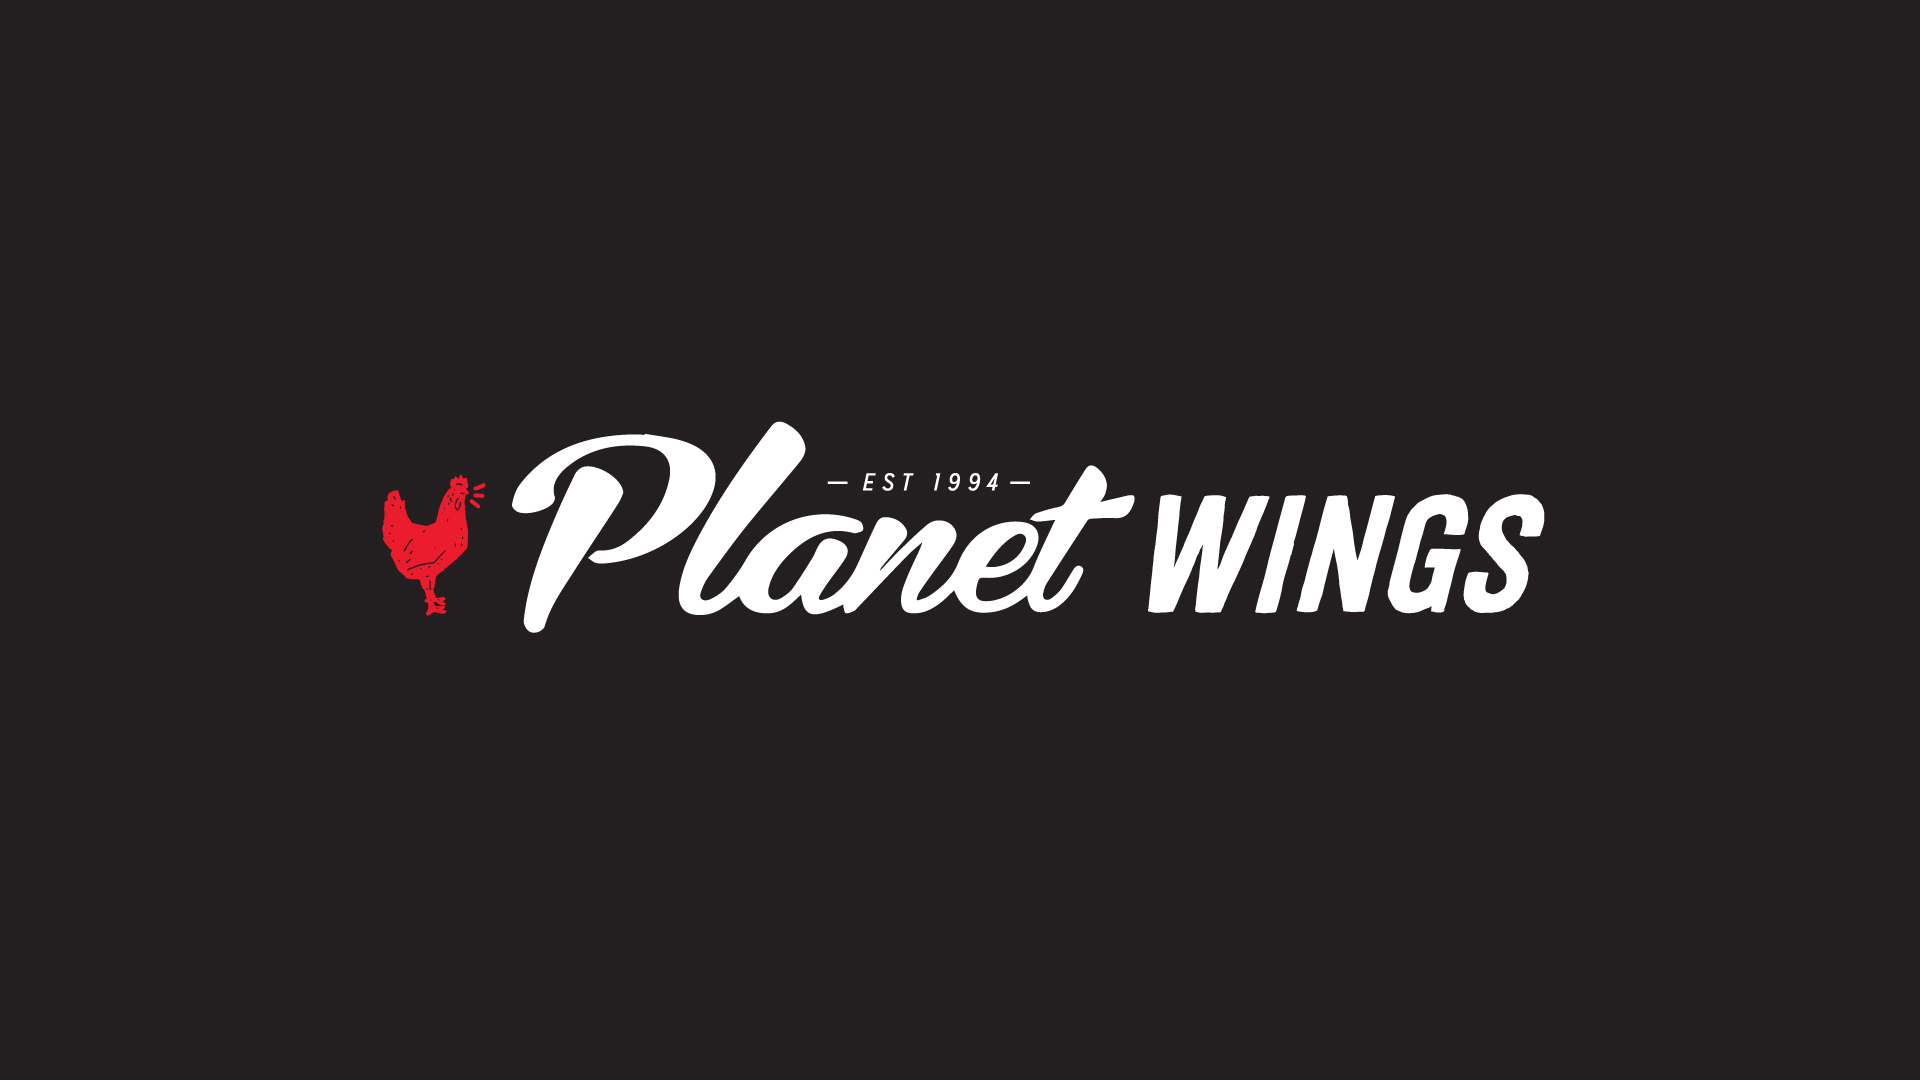 planet-wings-on-black